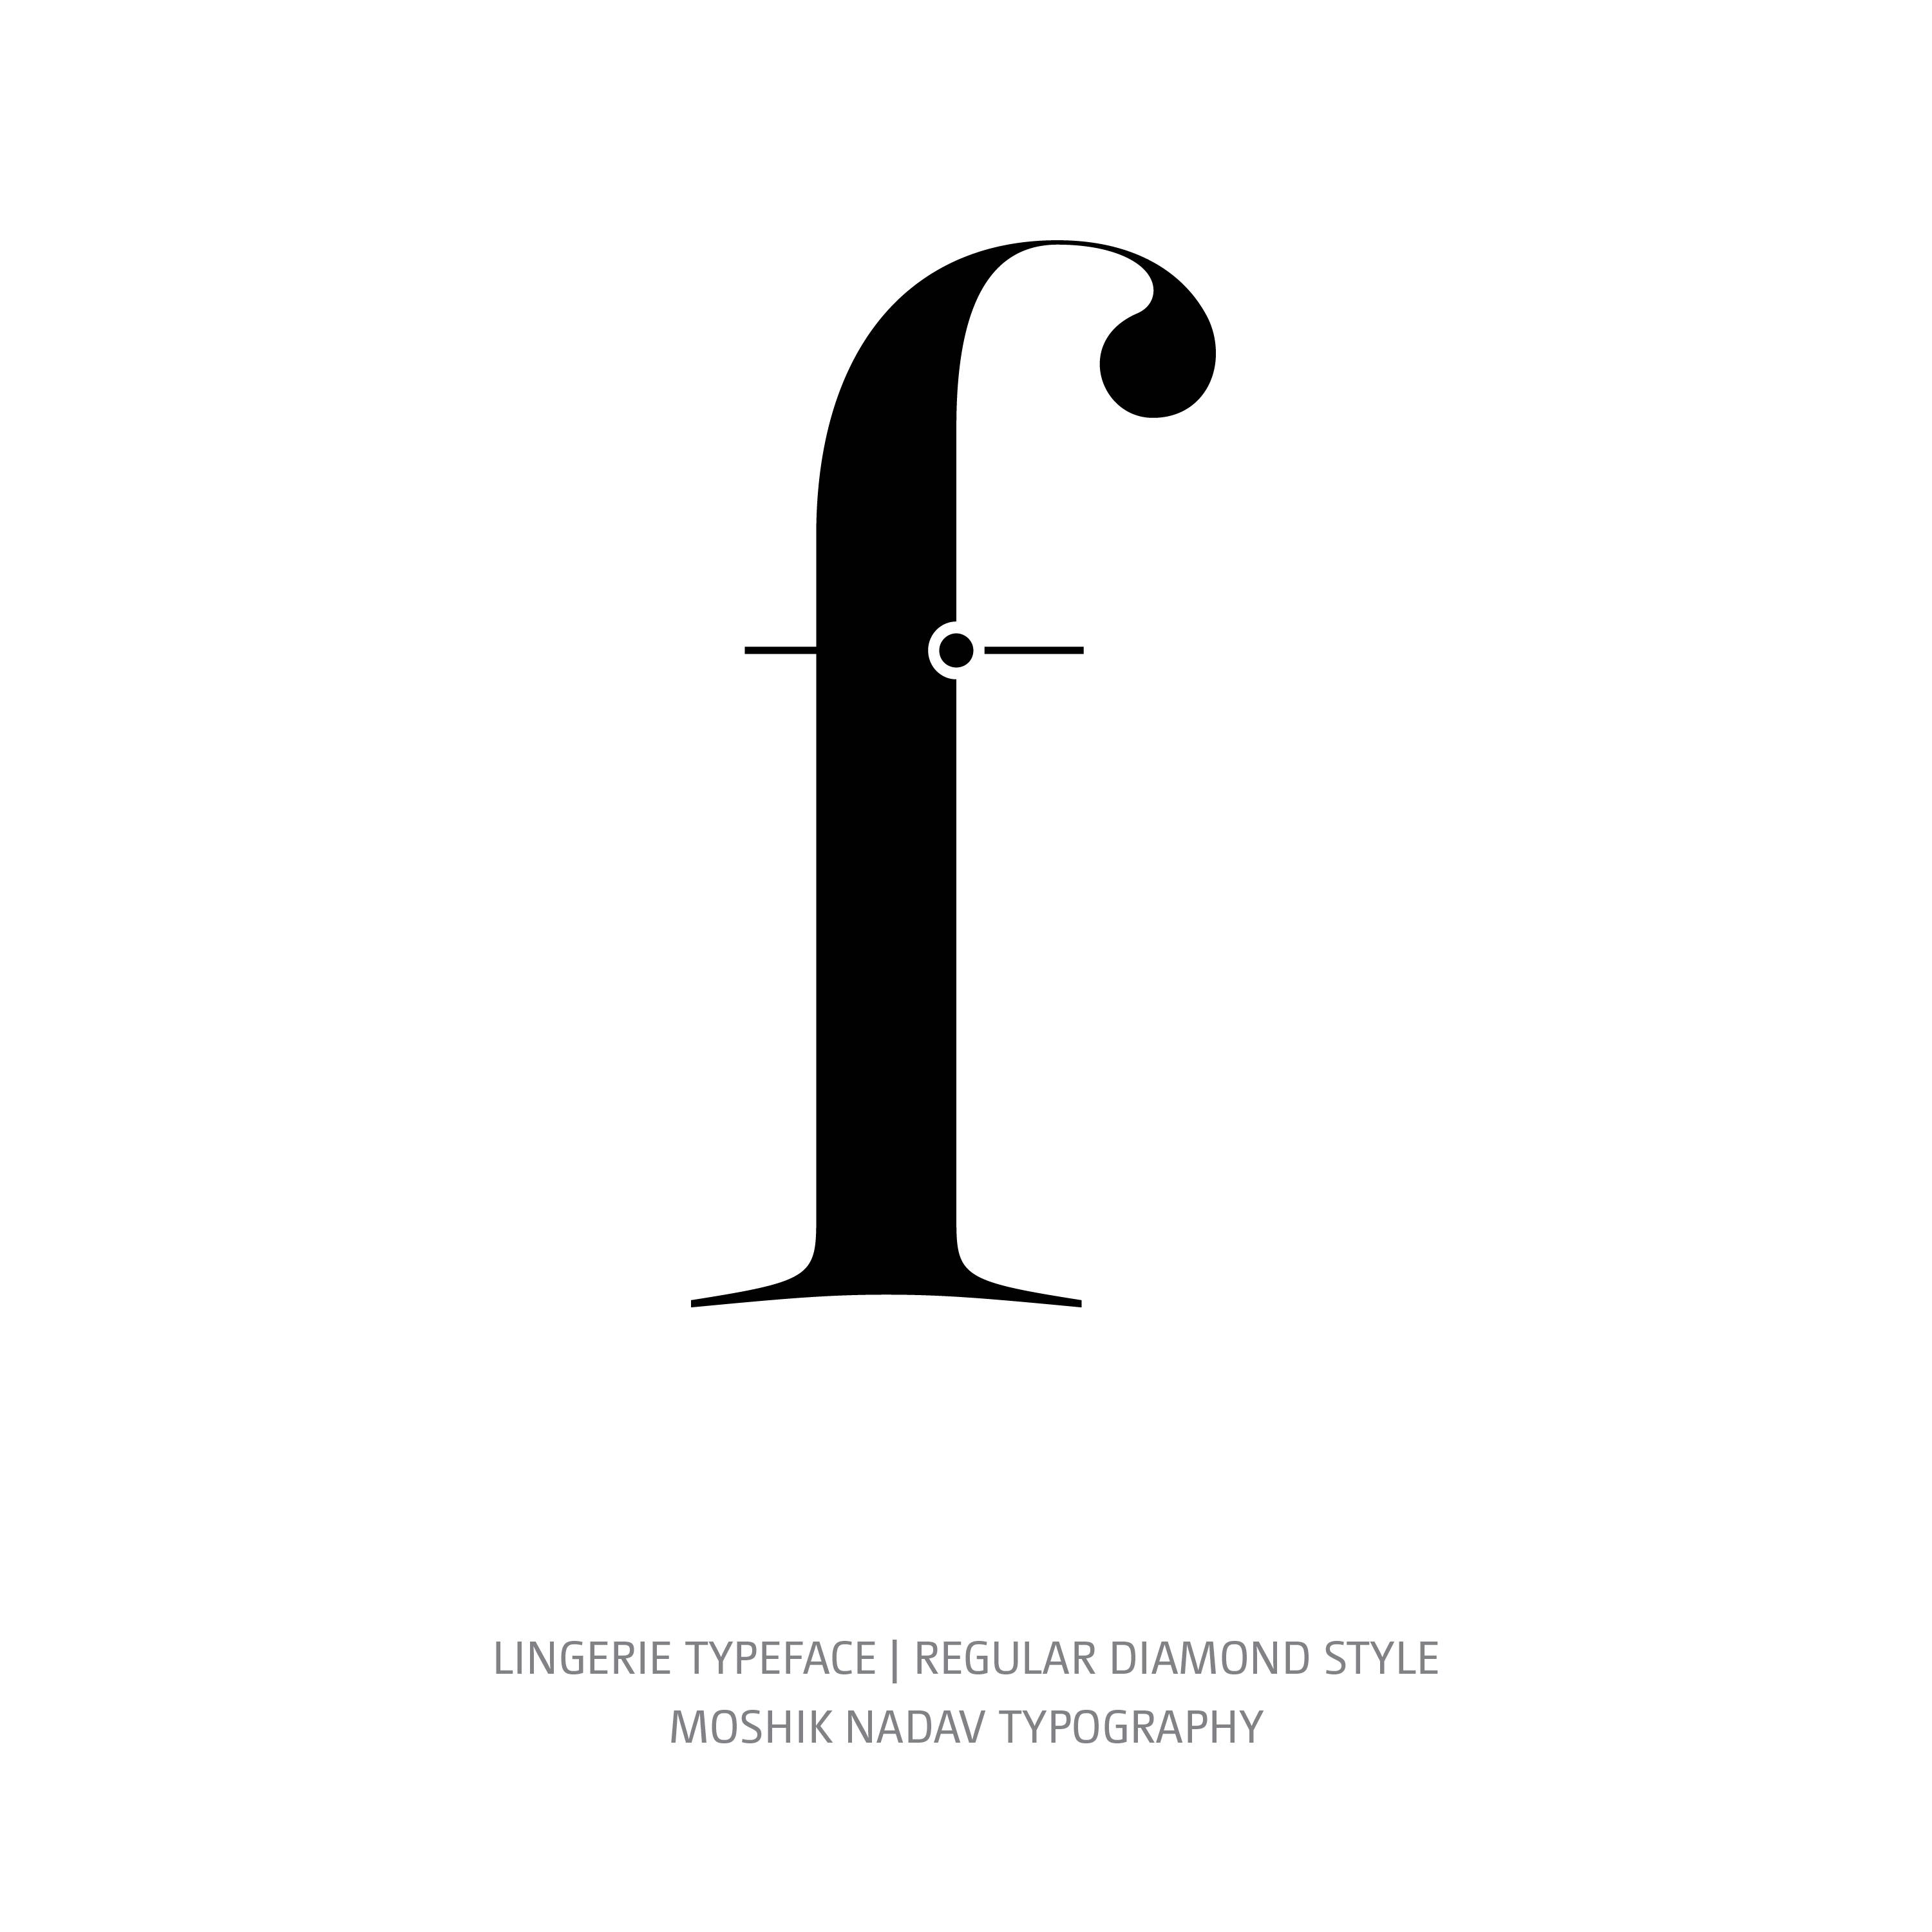 Lingerie Typeface Regular Diamond f